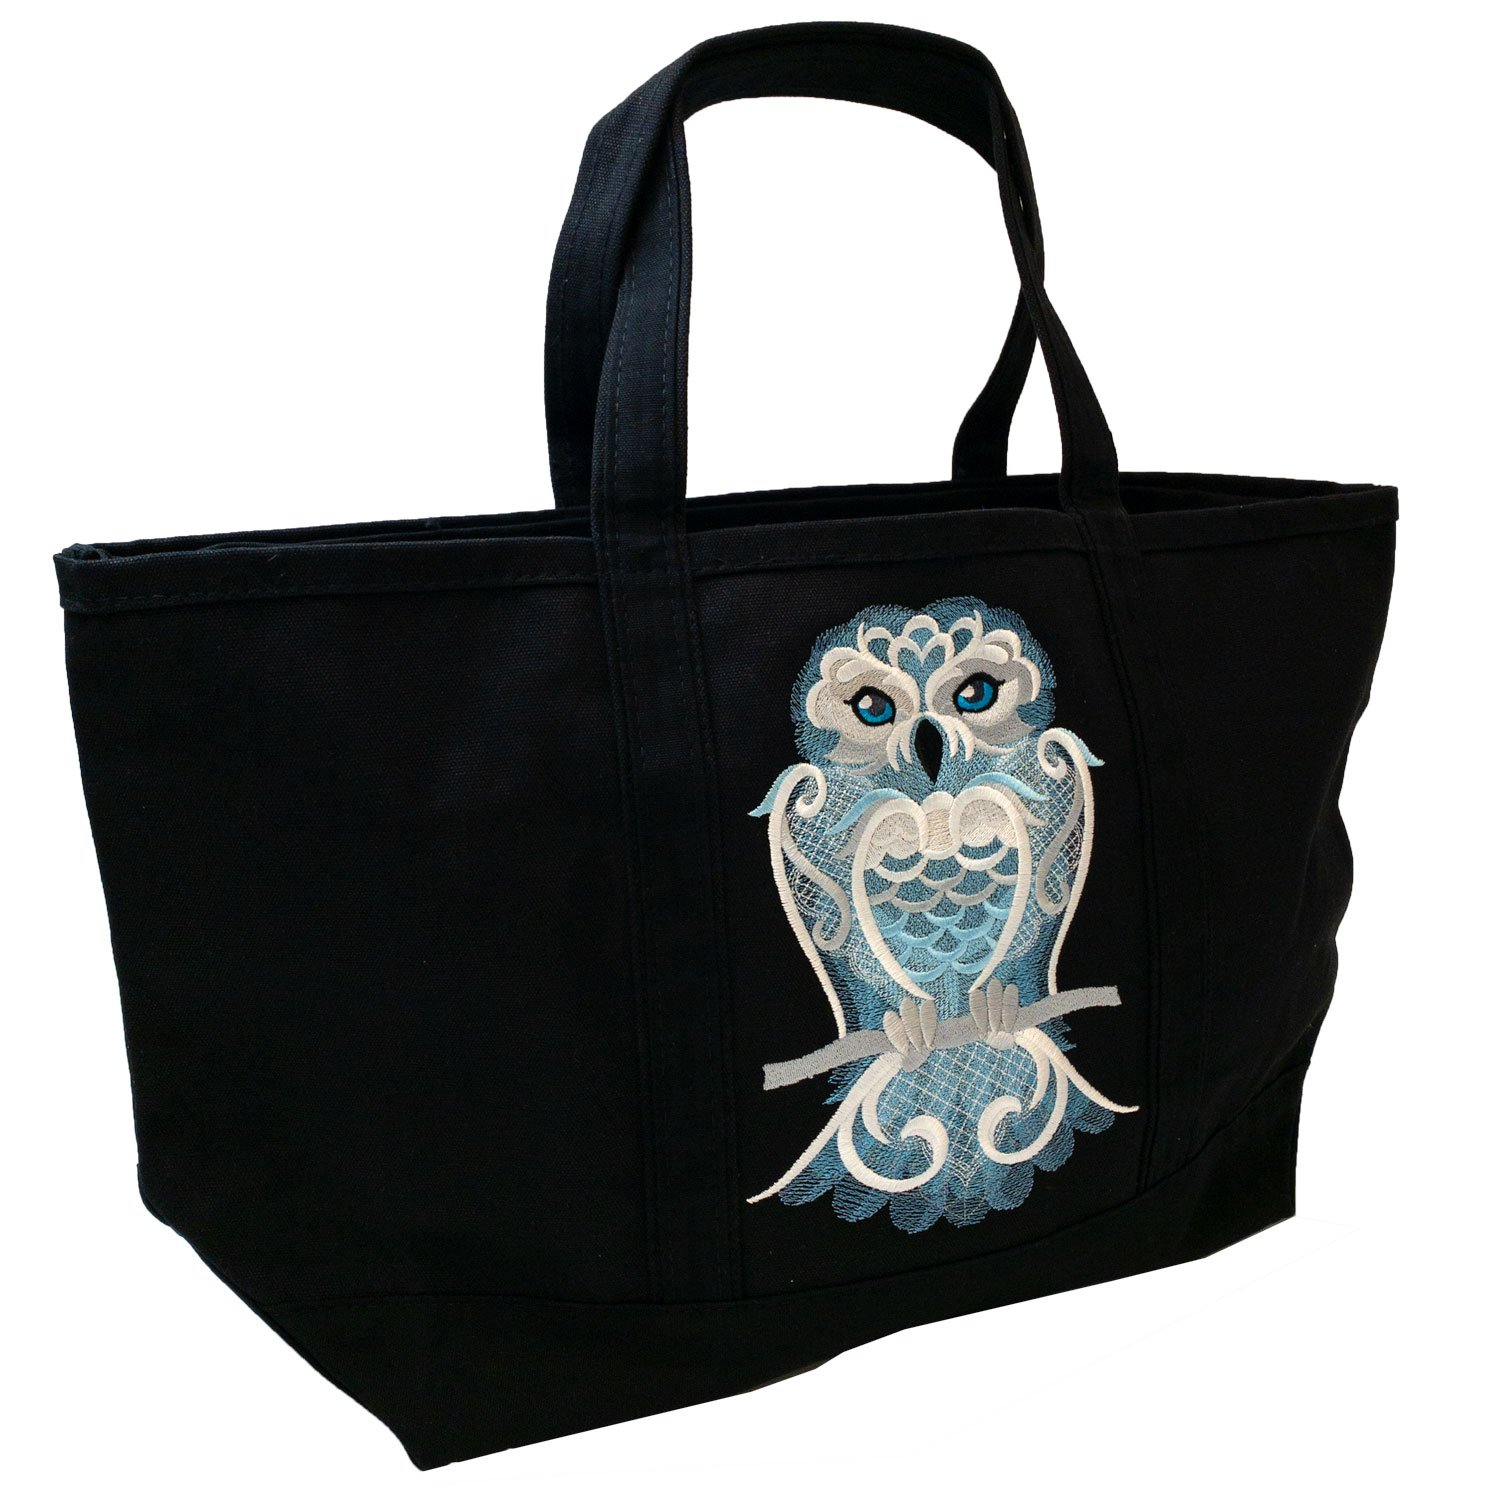 Embroidered Canvas Tote Large Black Frosty Owl